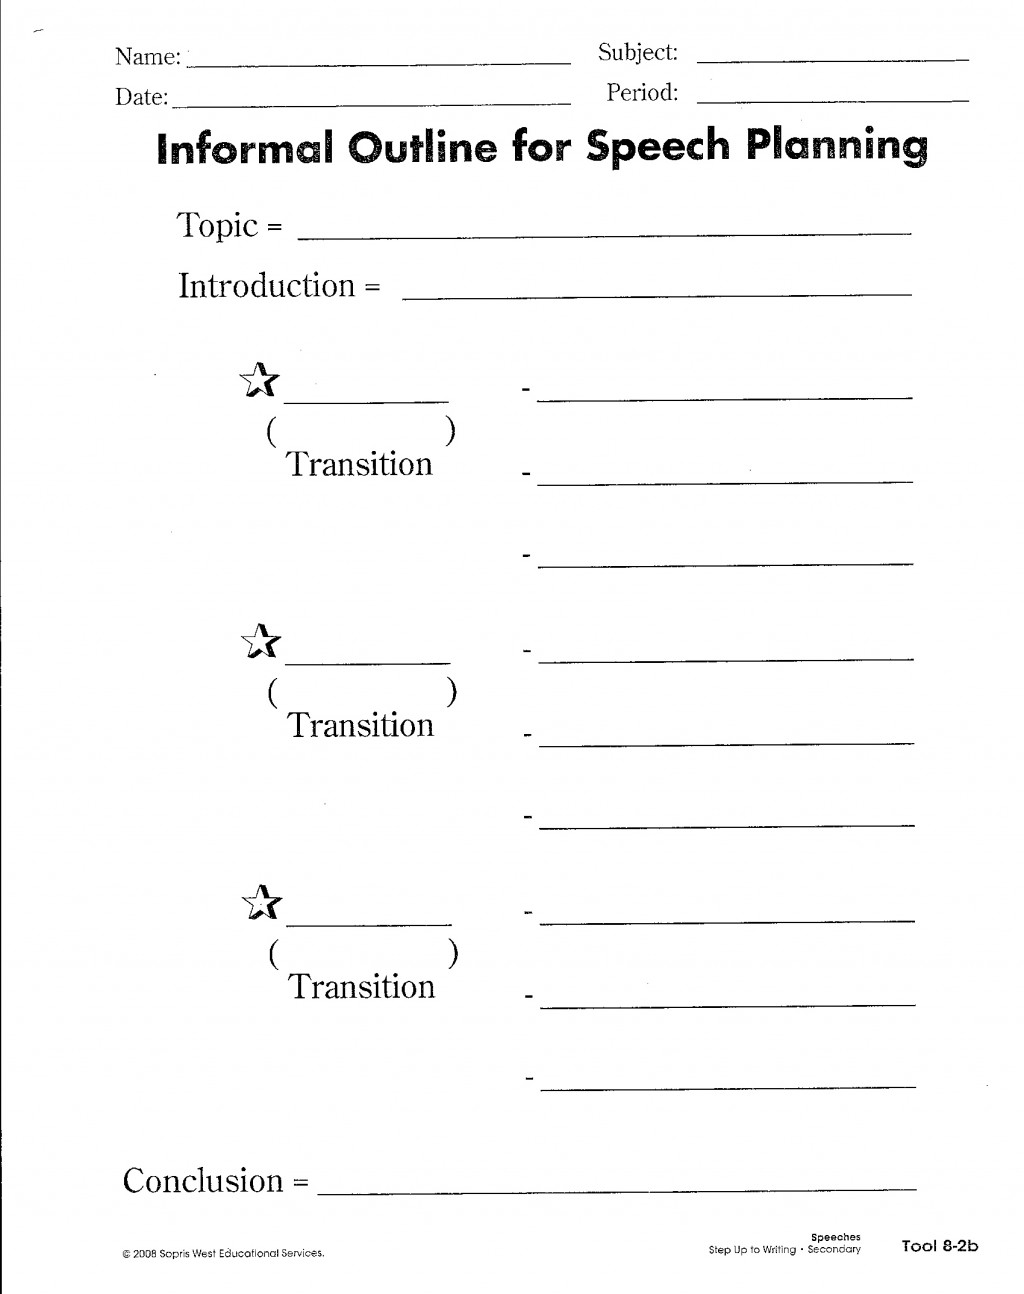 023 Making Research Paper Introduction Suw Planning Your Speech With An Informal Outline Breathtaking A Large